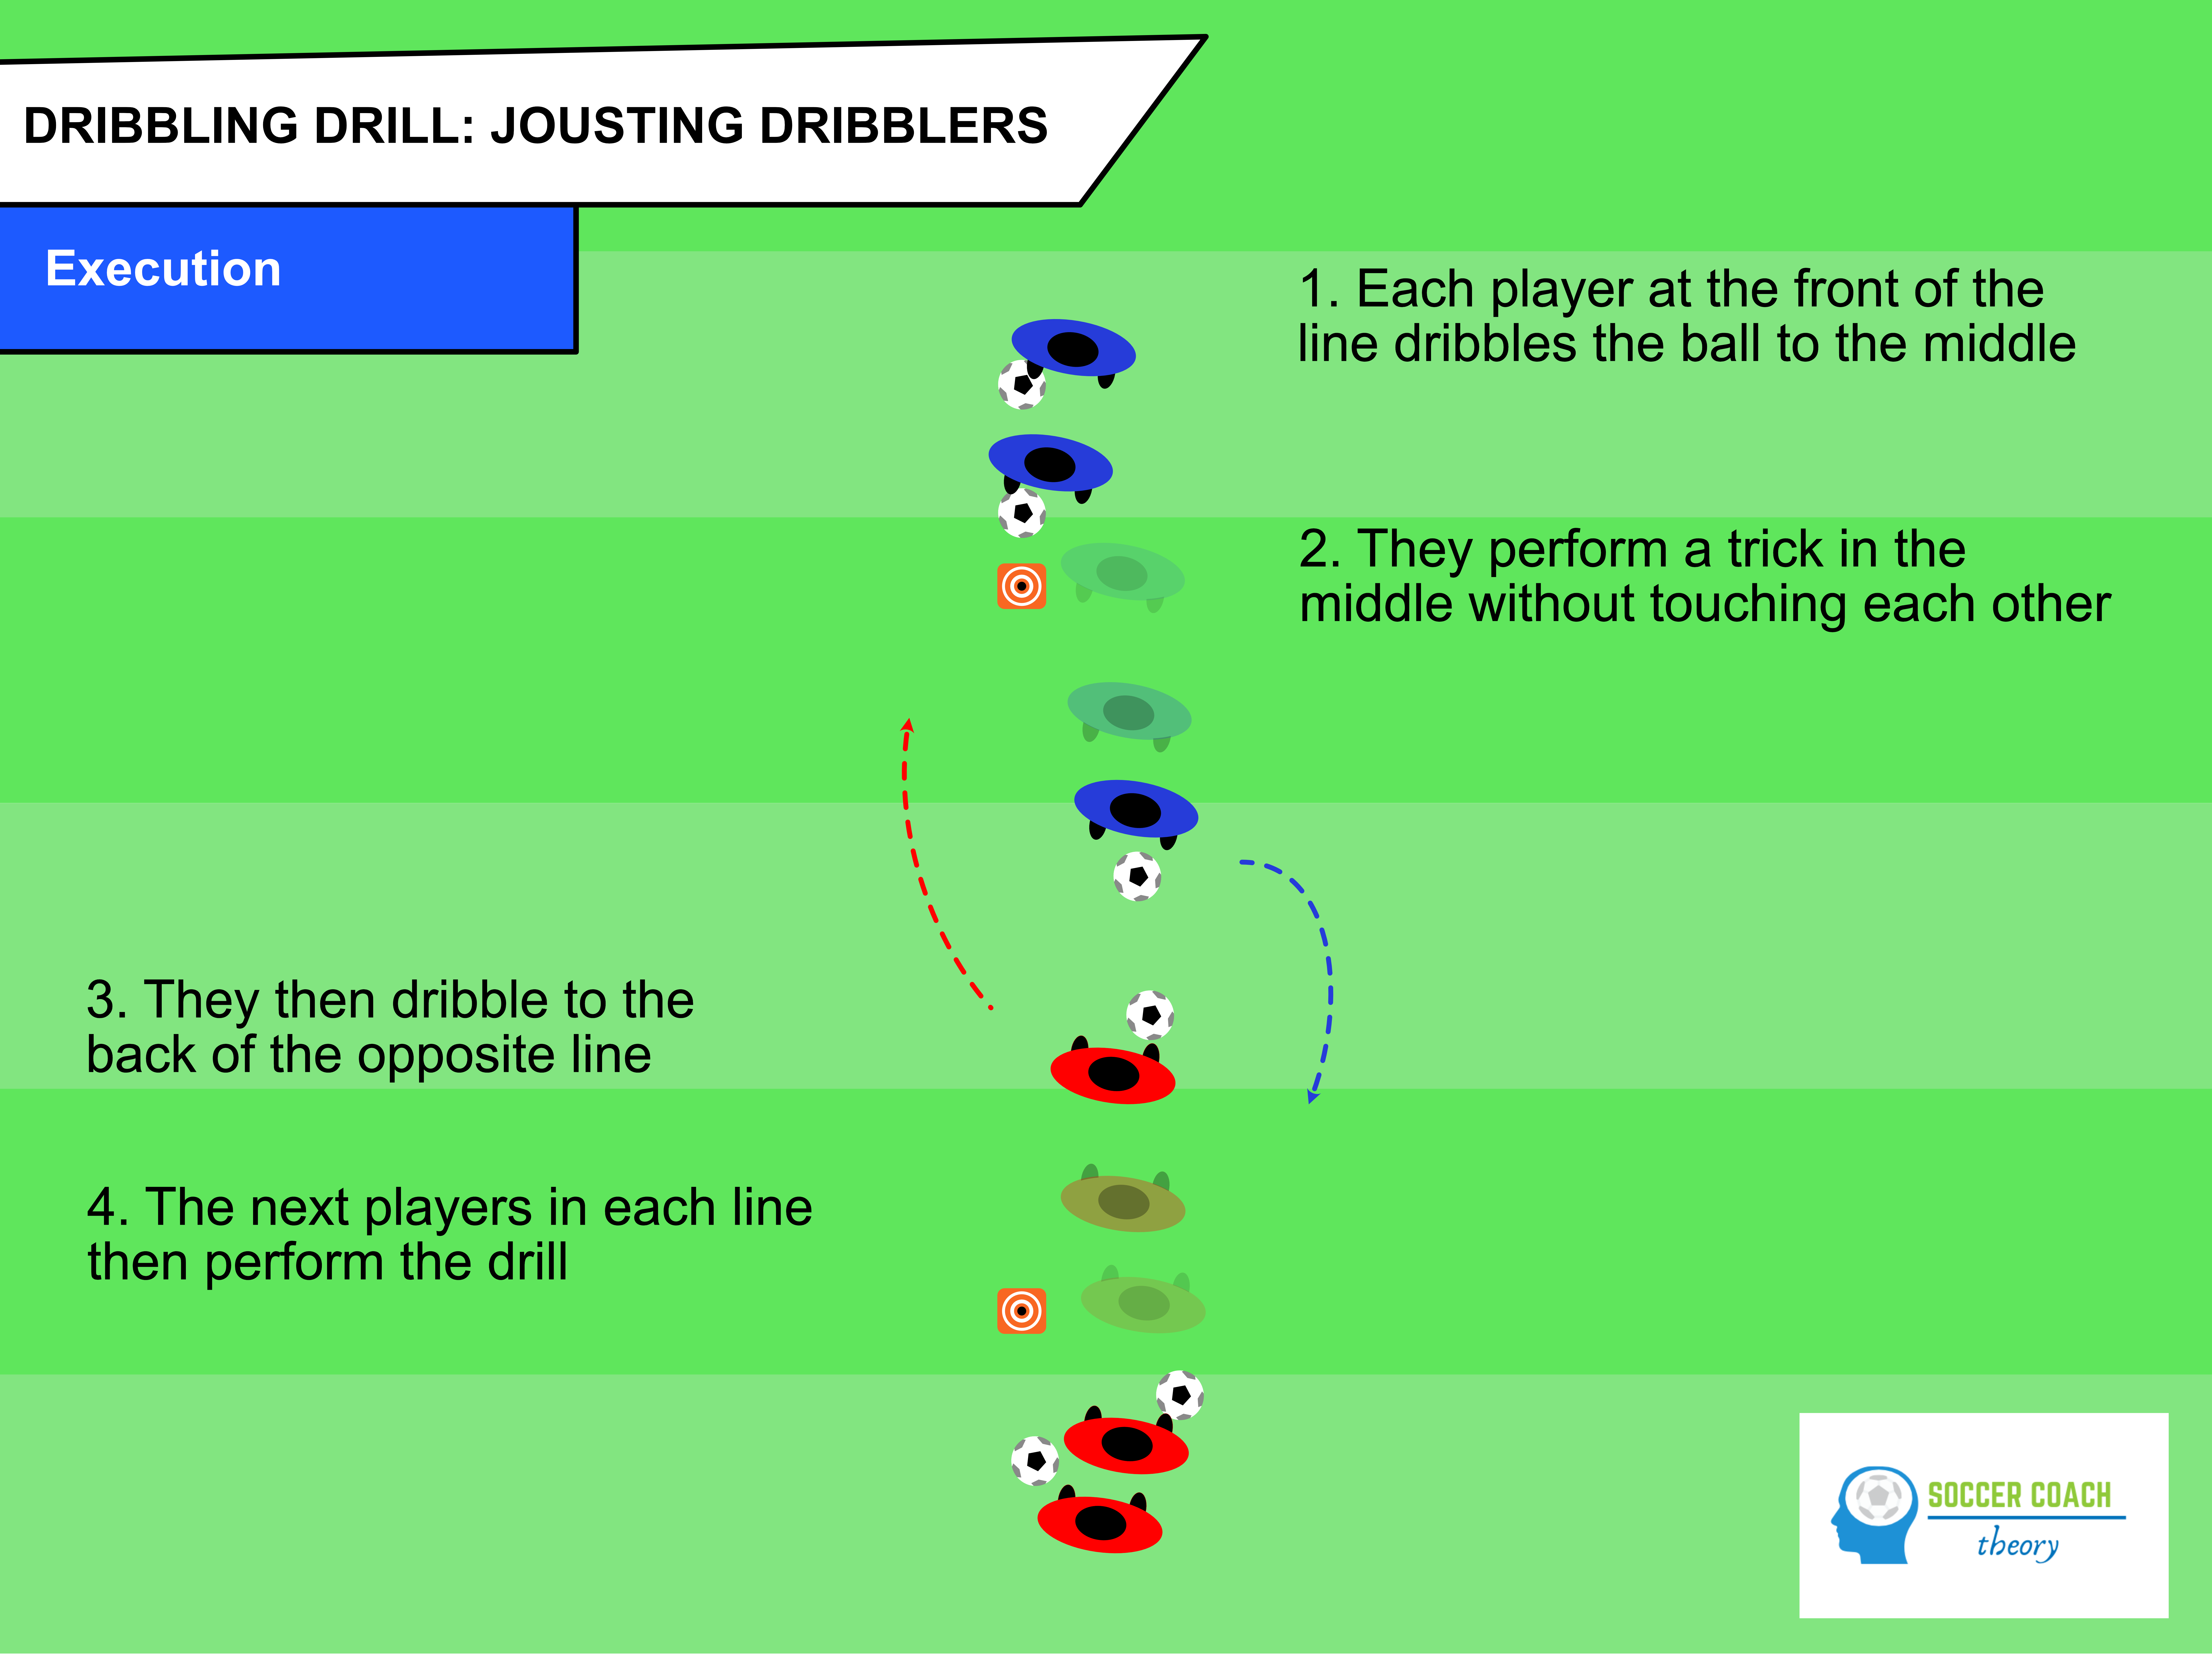 Soccer jousting dribblers drill - execution